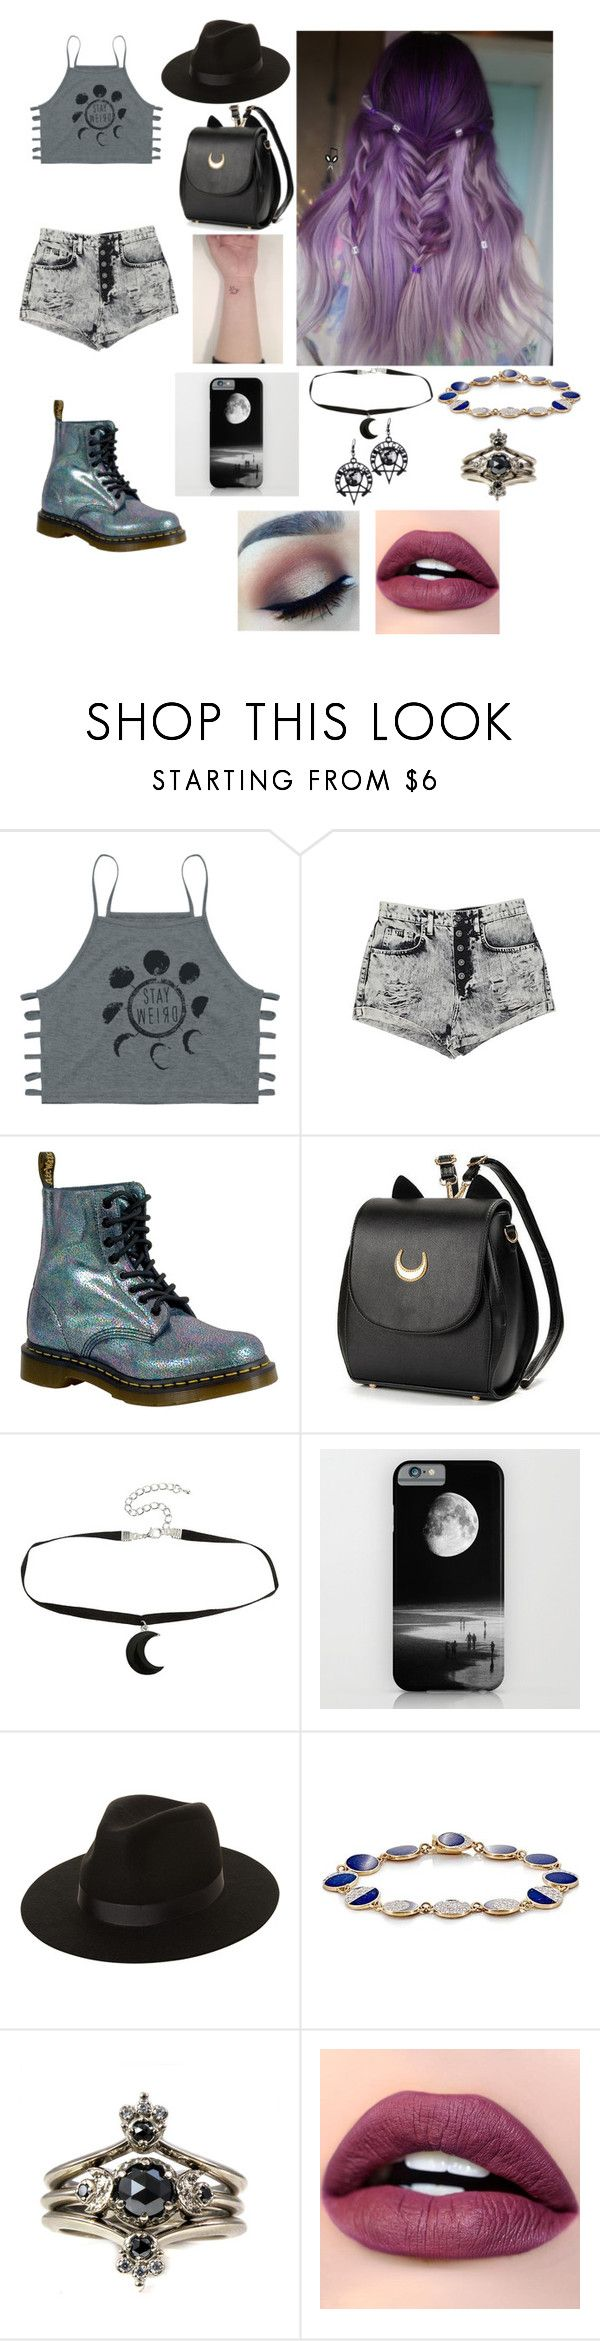 """""""to the moon and back"""" by xxjasperbiersackxx ❤ liked on Polyvore featuring Carmar, Dr. Martens, Hot Topic, Lack of Color, Pamela Love and Silvana"""